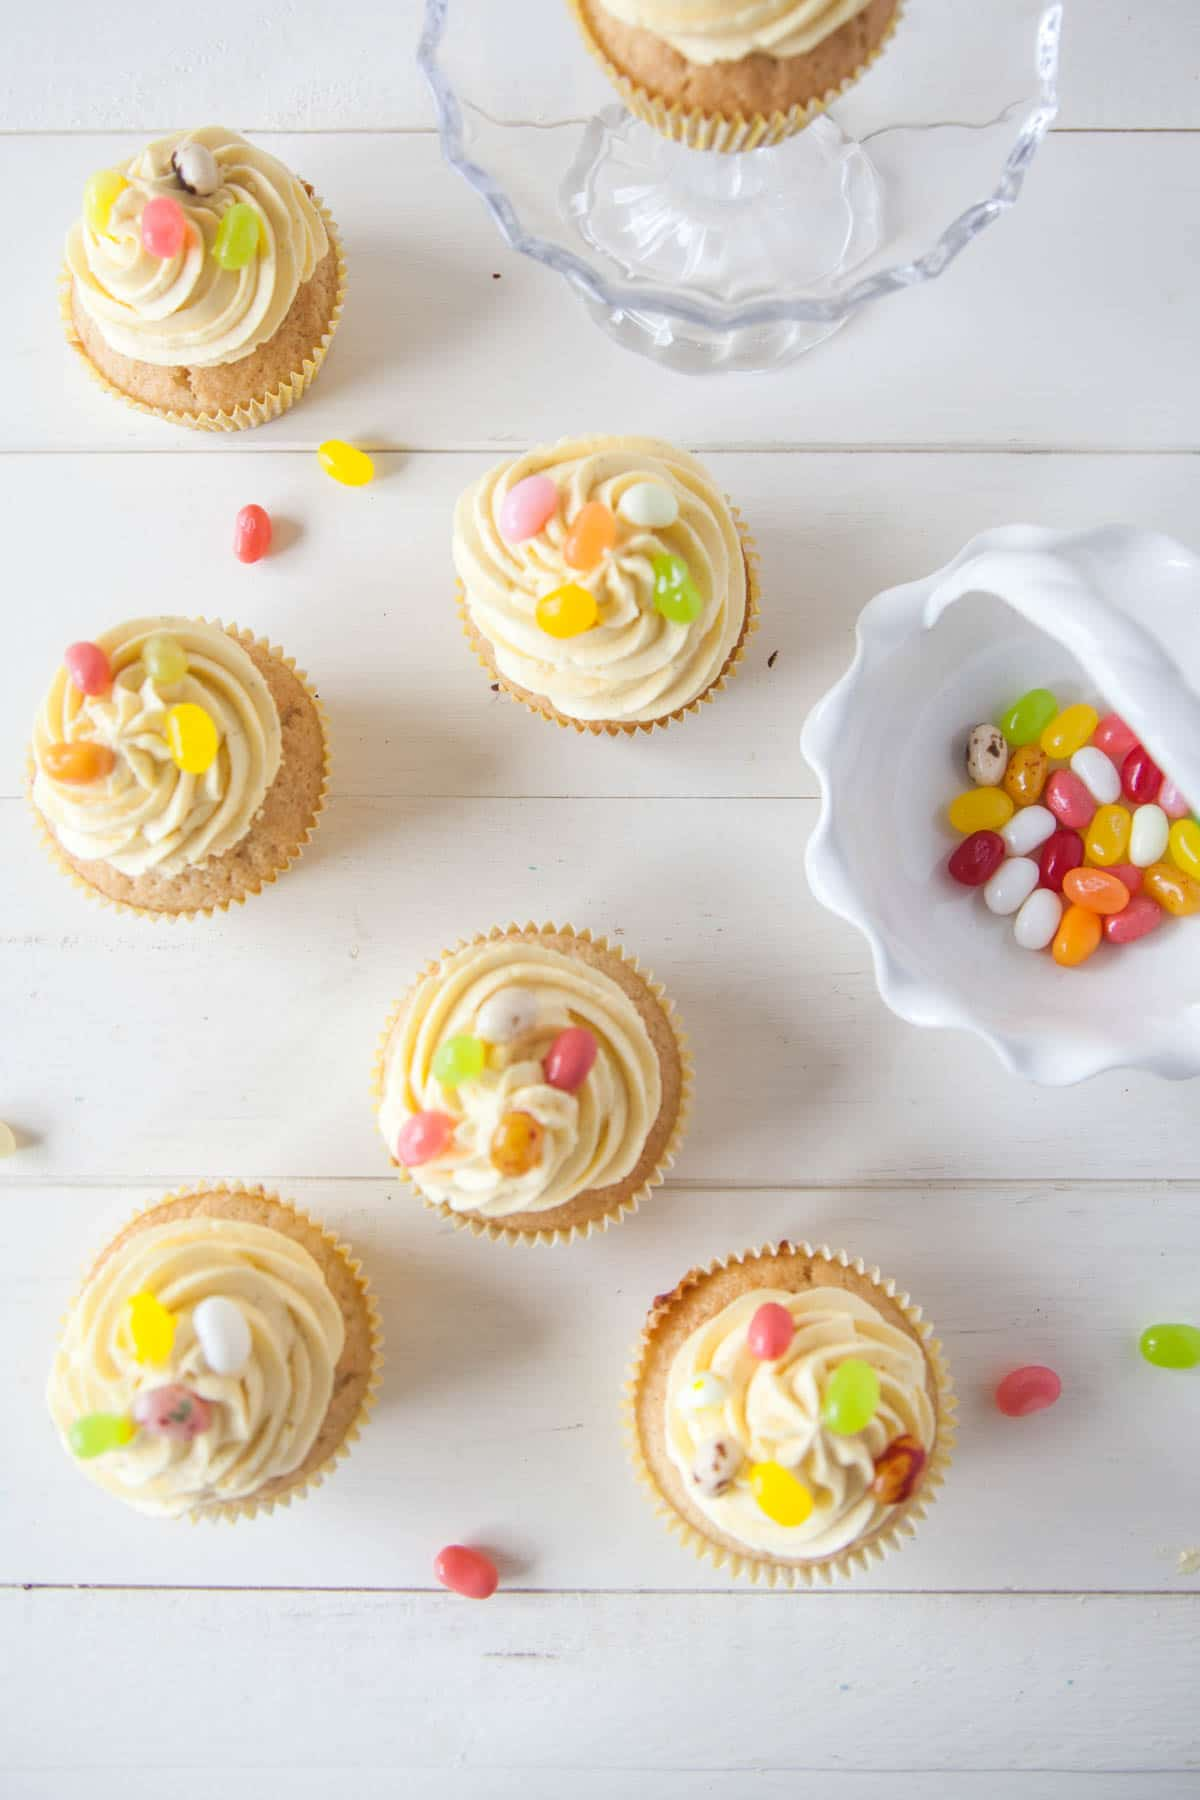 Vegan Lemon Cupcakes for Easter - Light, fluffy lemon cupcakes topped with dairy-free zesty buttercream and jelly beans!